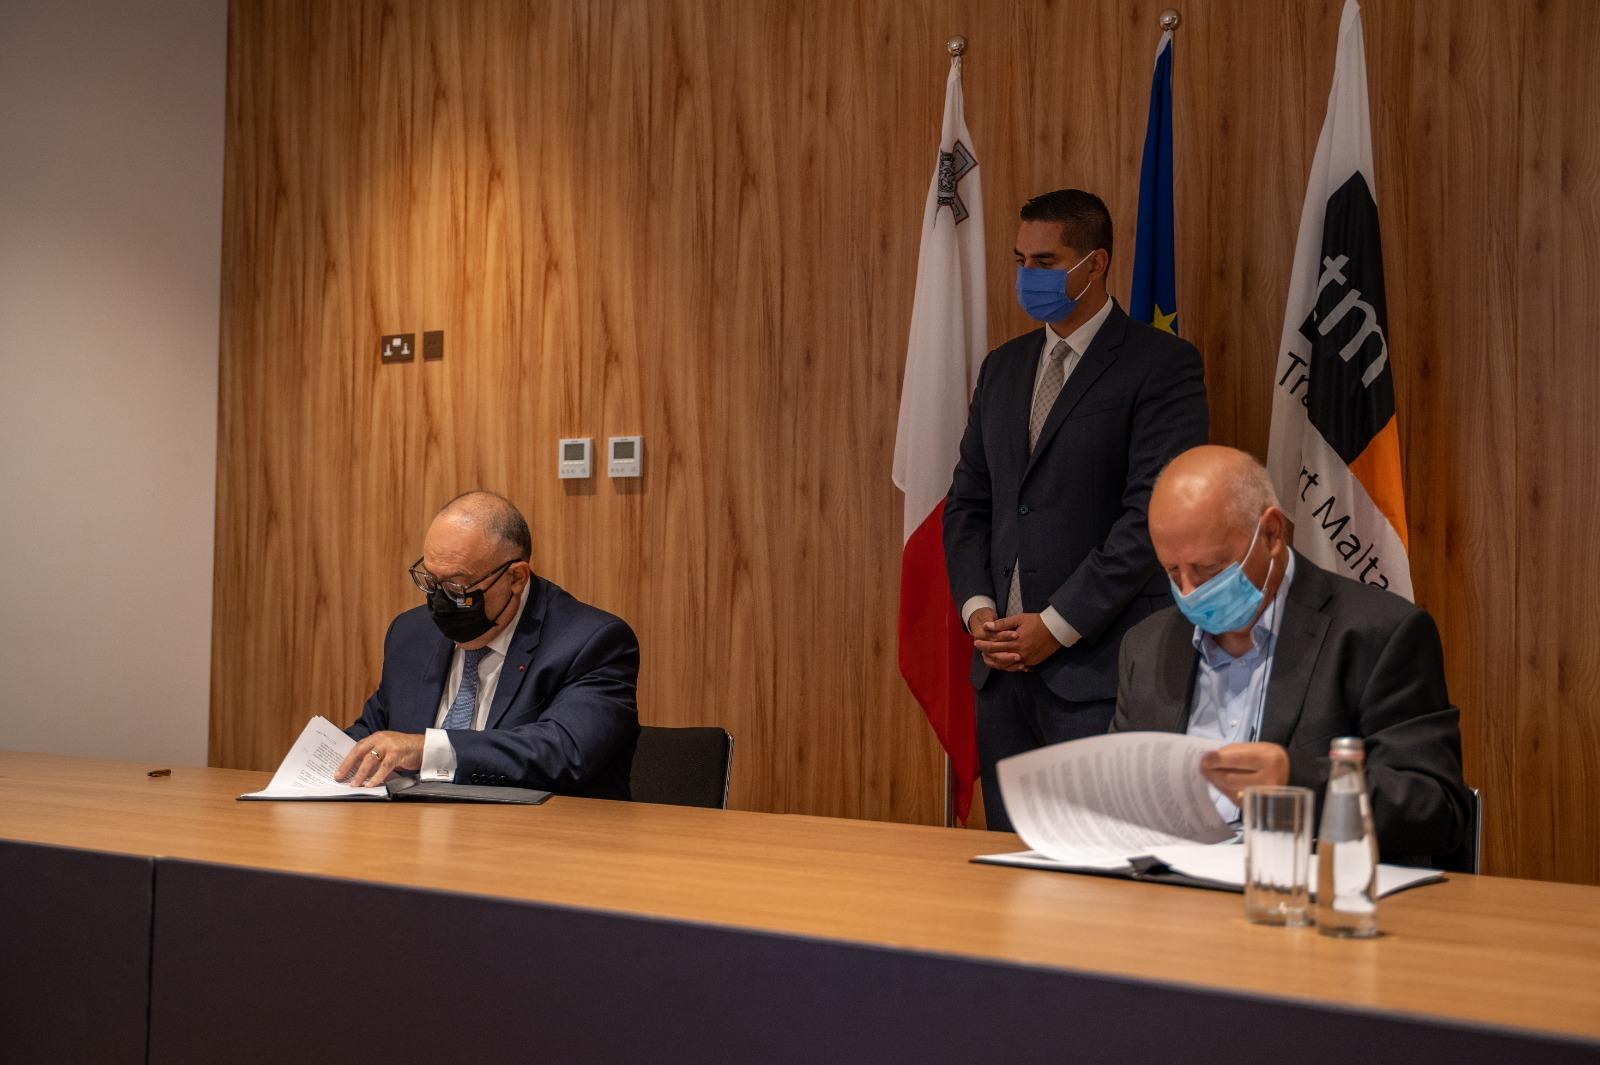 Transport Malta chairman Josef Bugeja and University of Malta rector Alfred Vella sign an MOU concerning the fund, as Transport Minister Ian Borg looks on. Photo: Transport Ministry